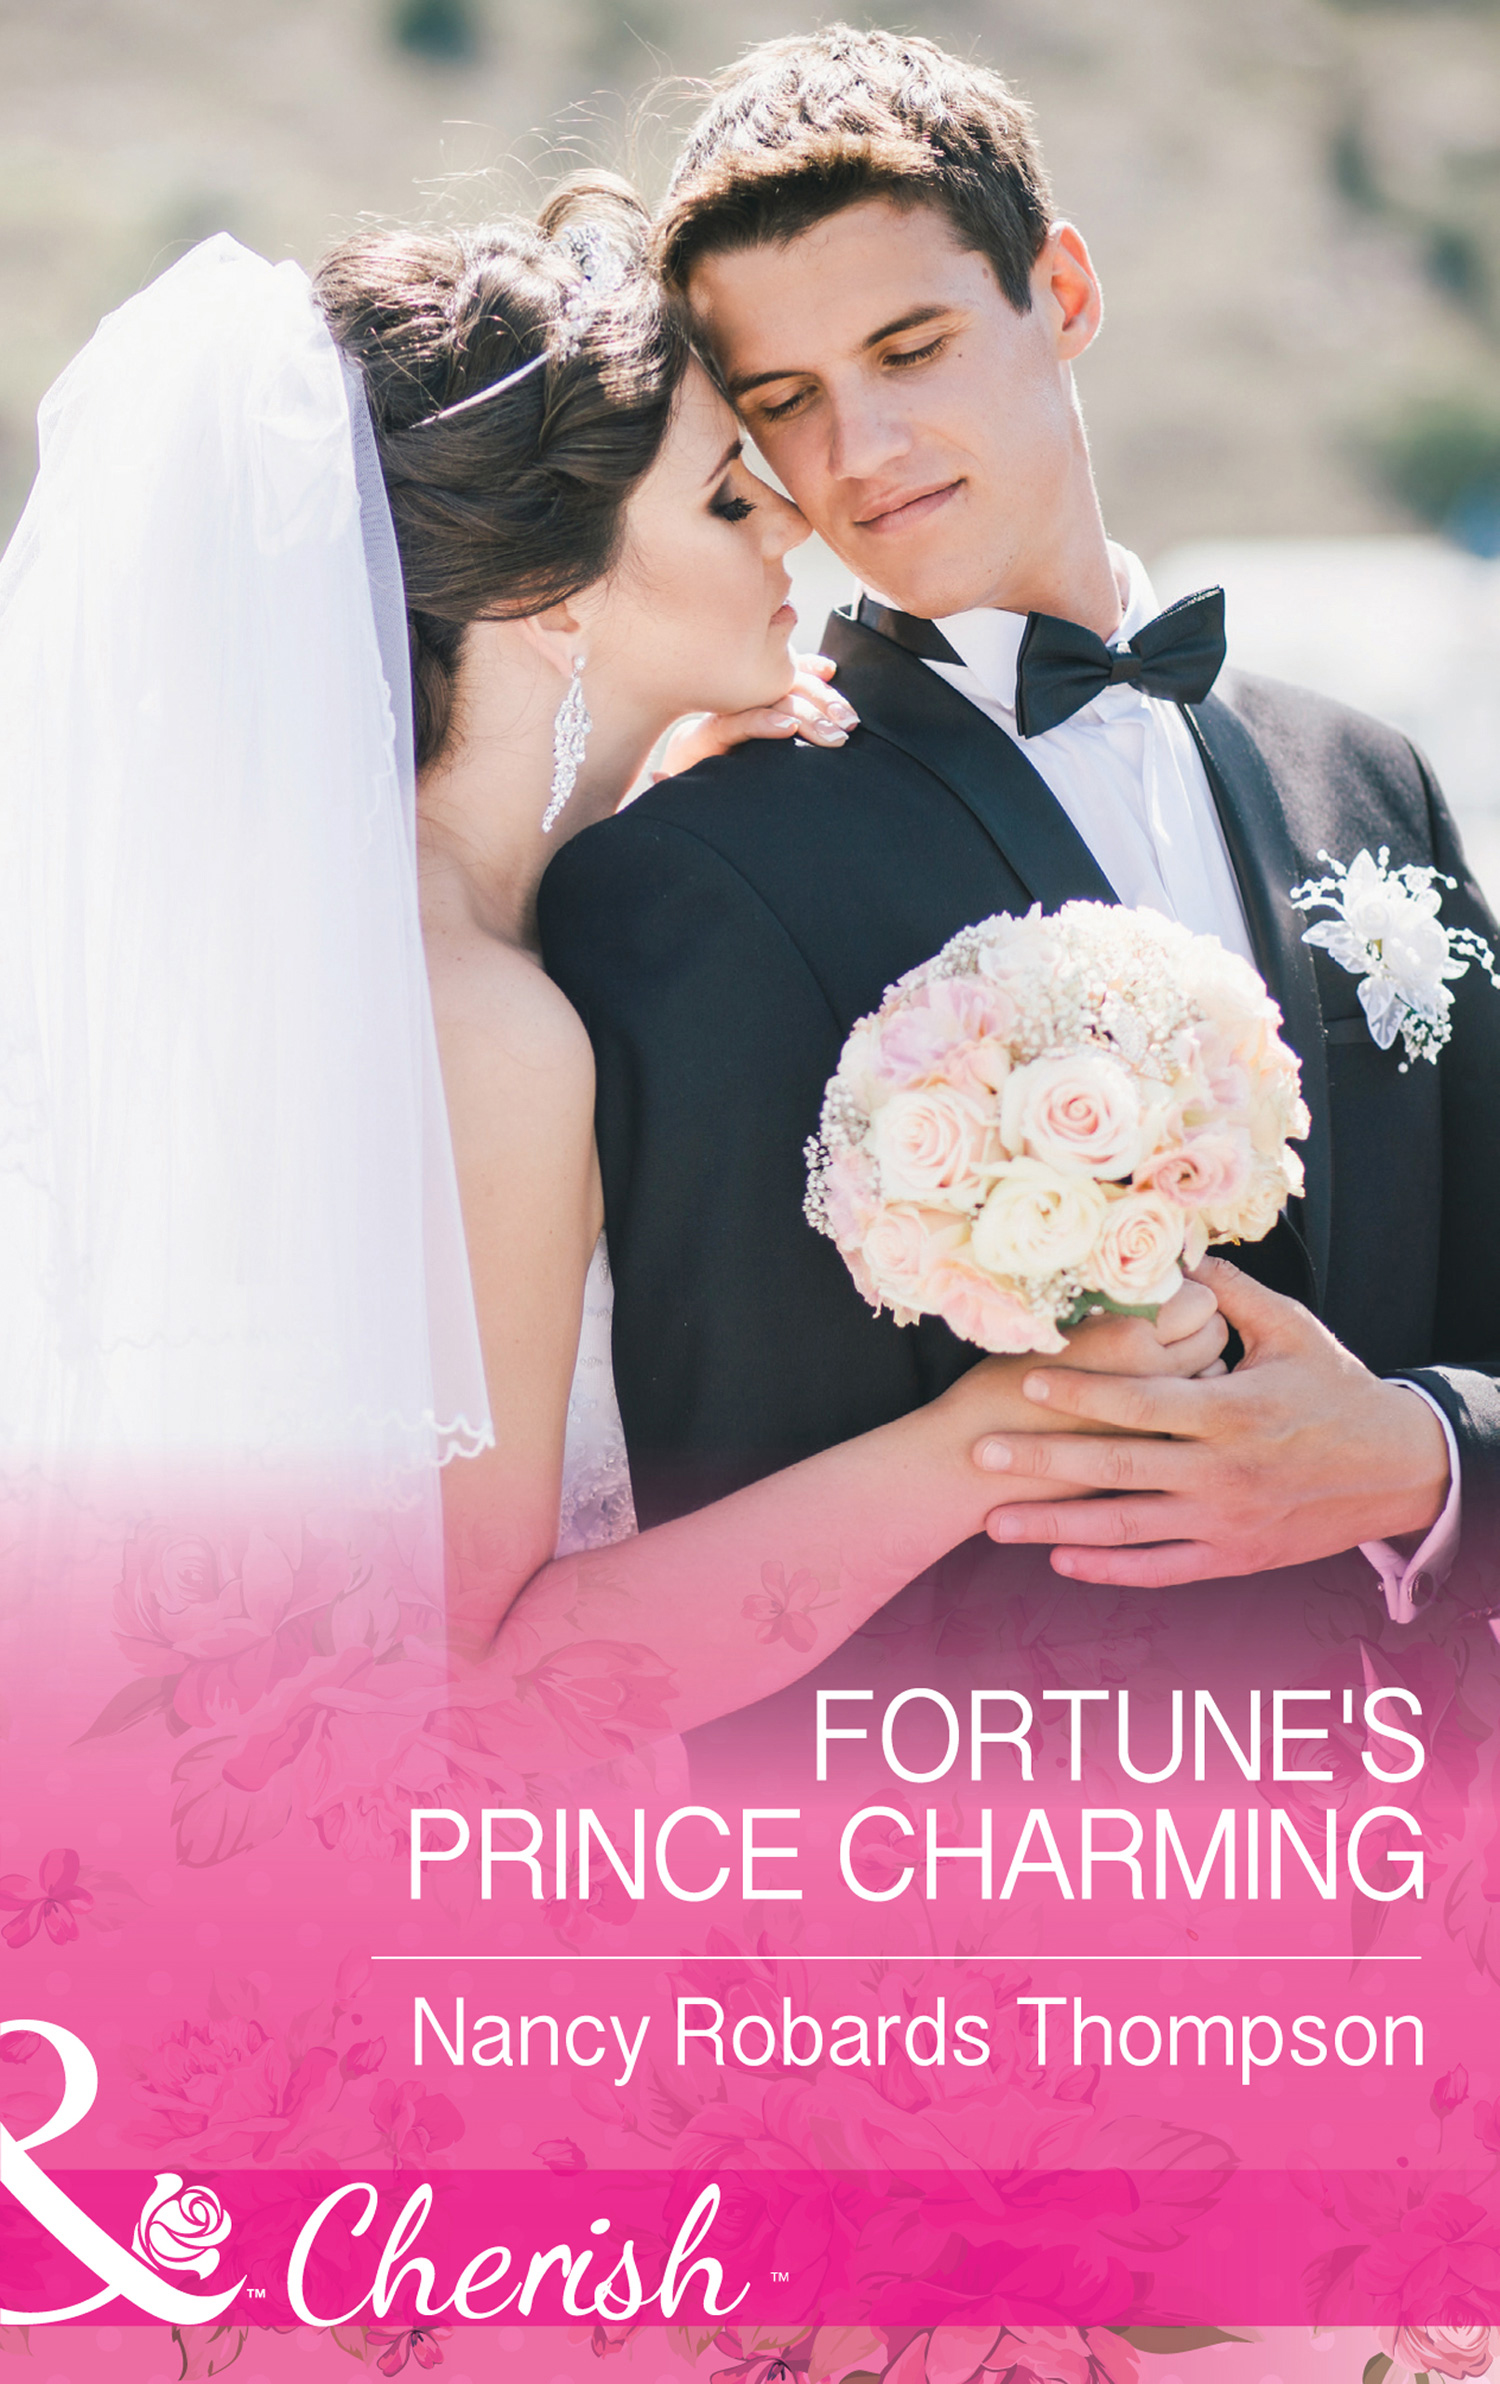 Fortune's Prince Charming